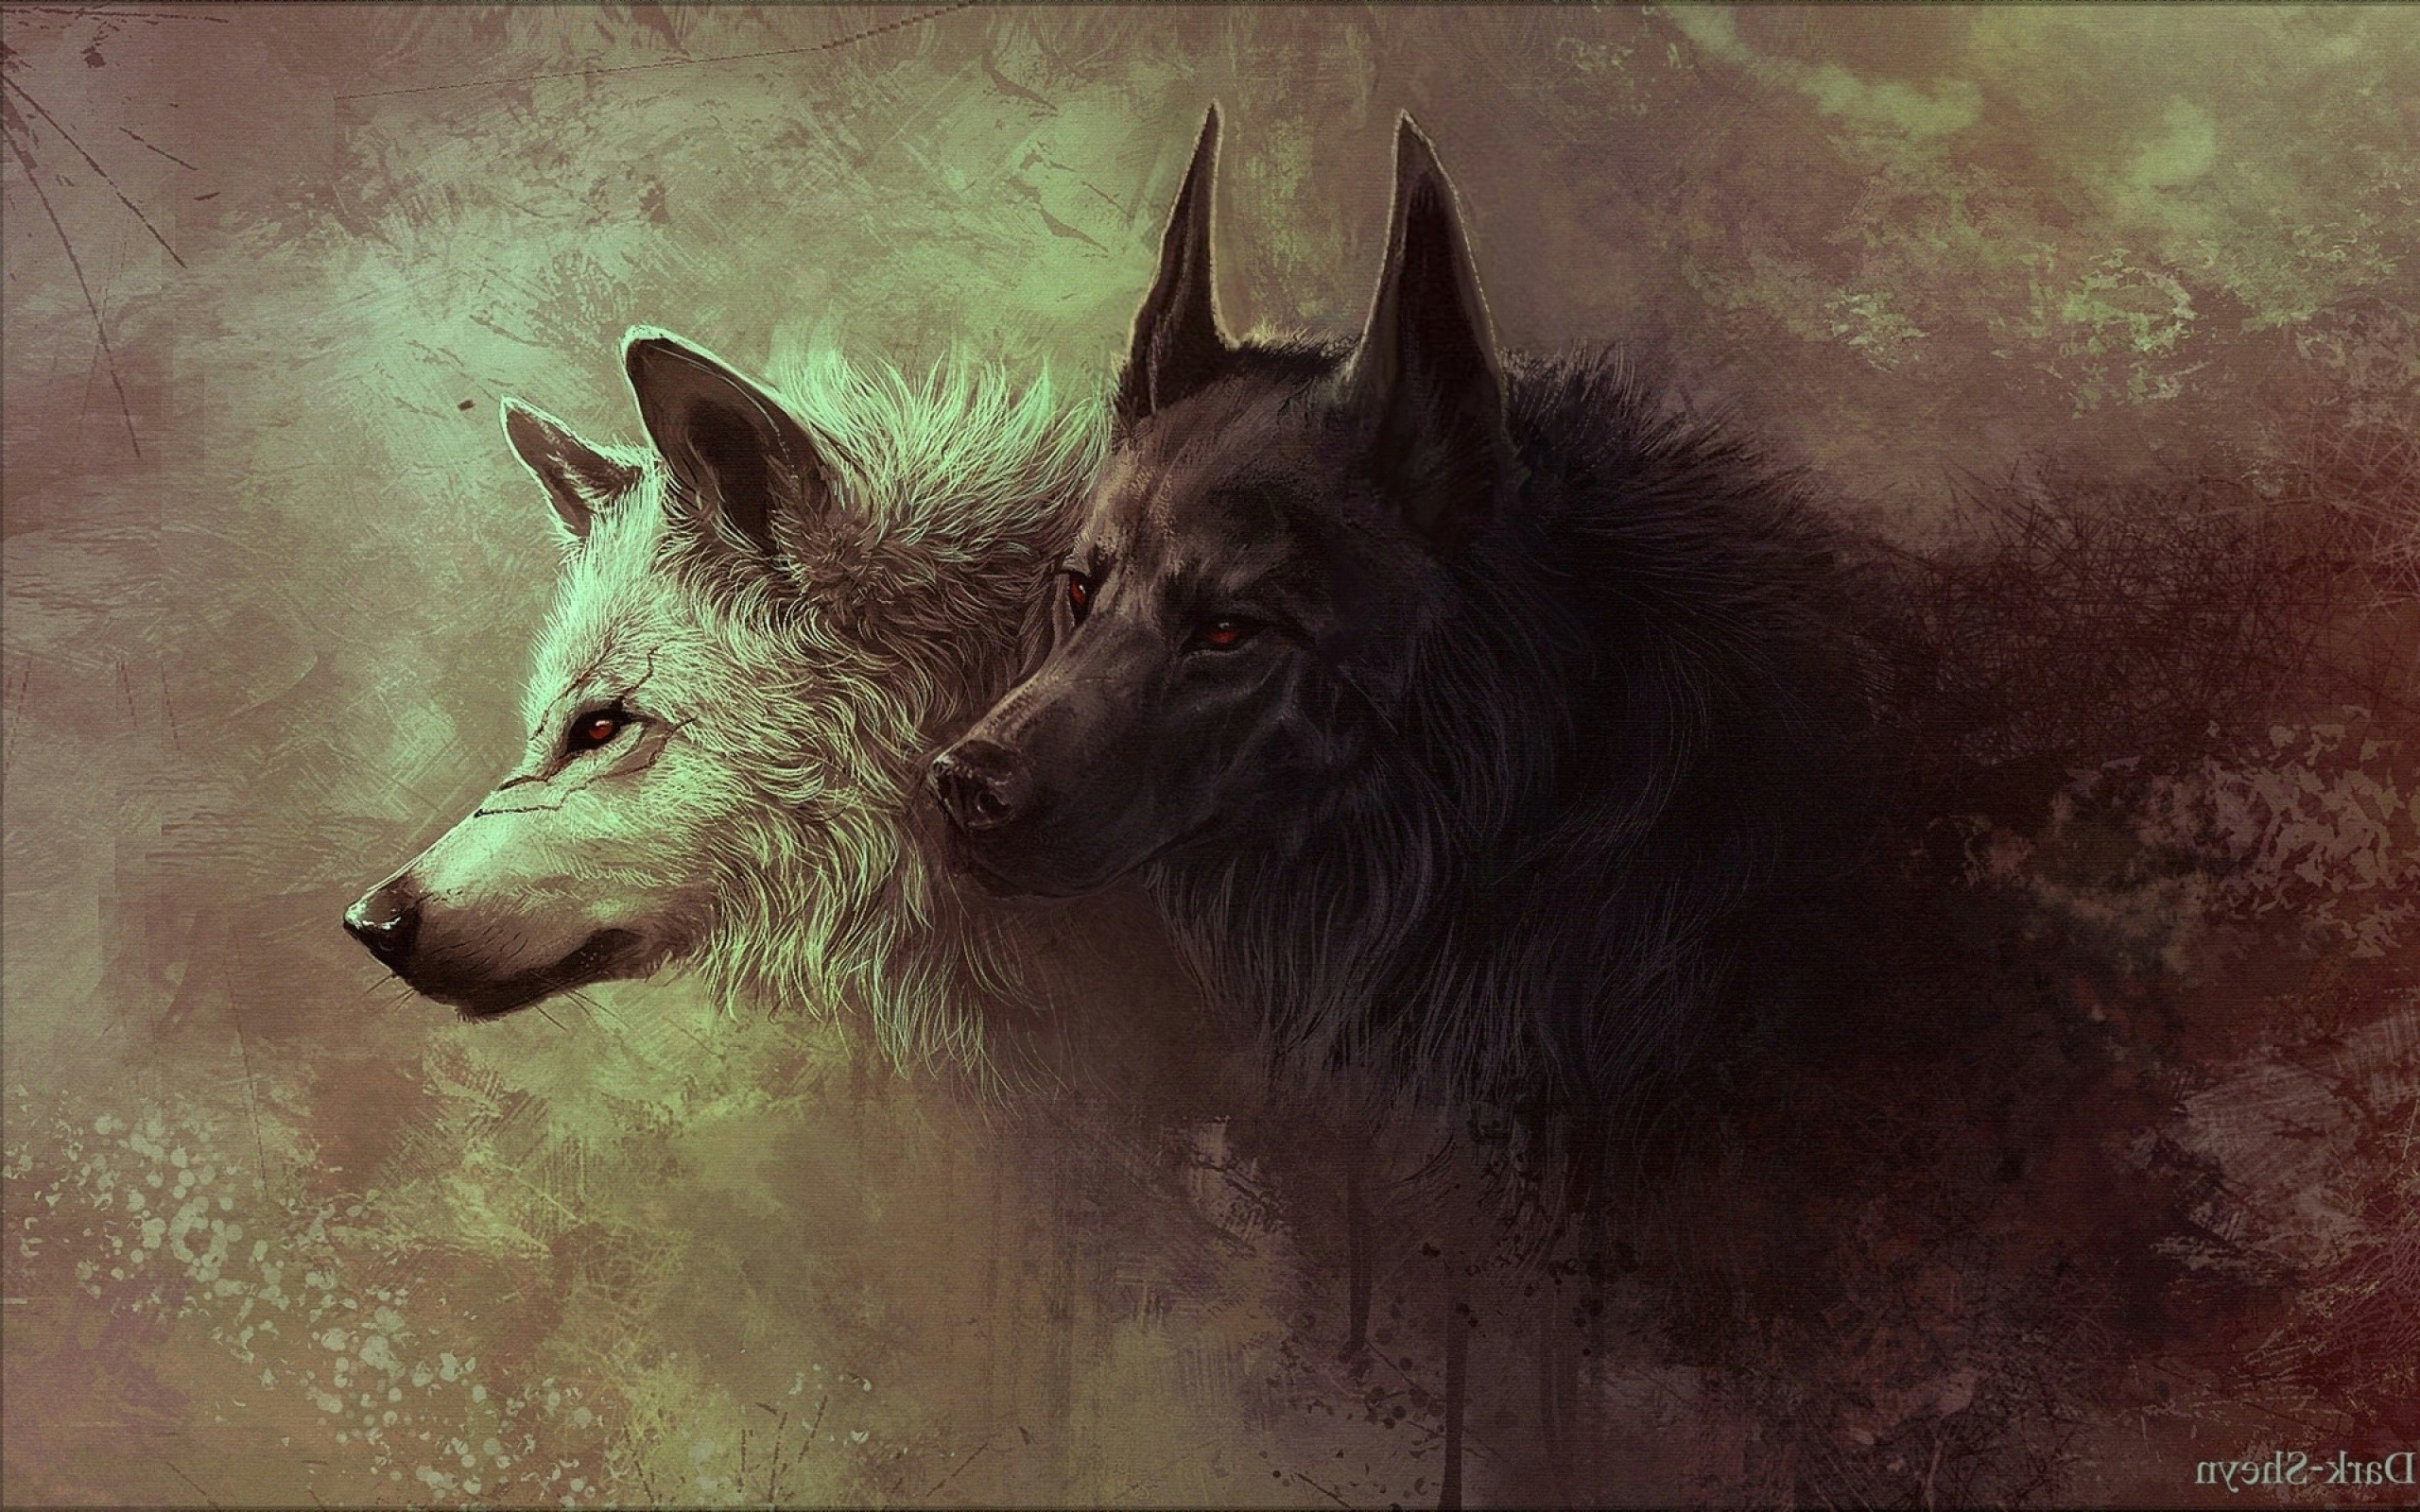 0 640x1136 wolf wallpapers 2560x1600 wolf art hd artist 4k wallpapers images backgrounds photos